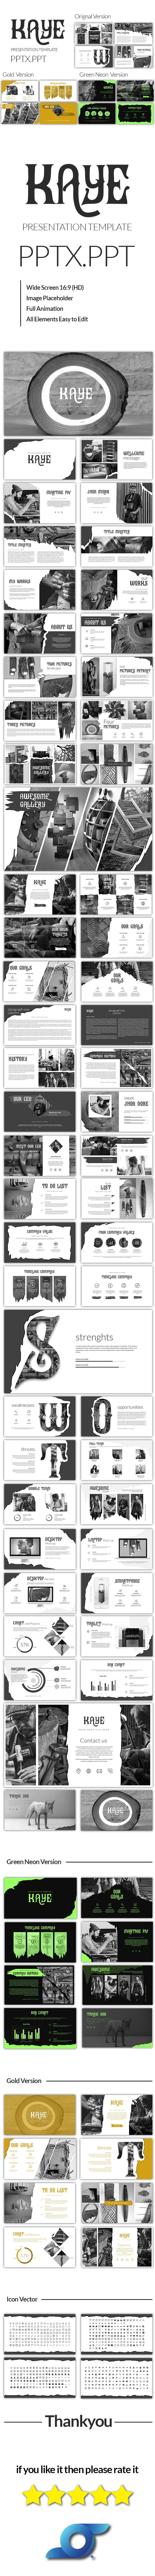 Kaye Powerpoint Template - Abstract #PowerPoint Templates